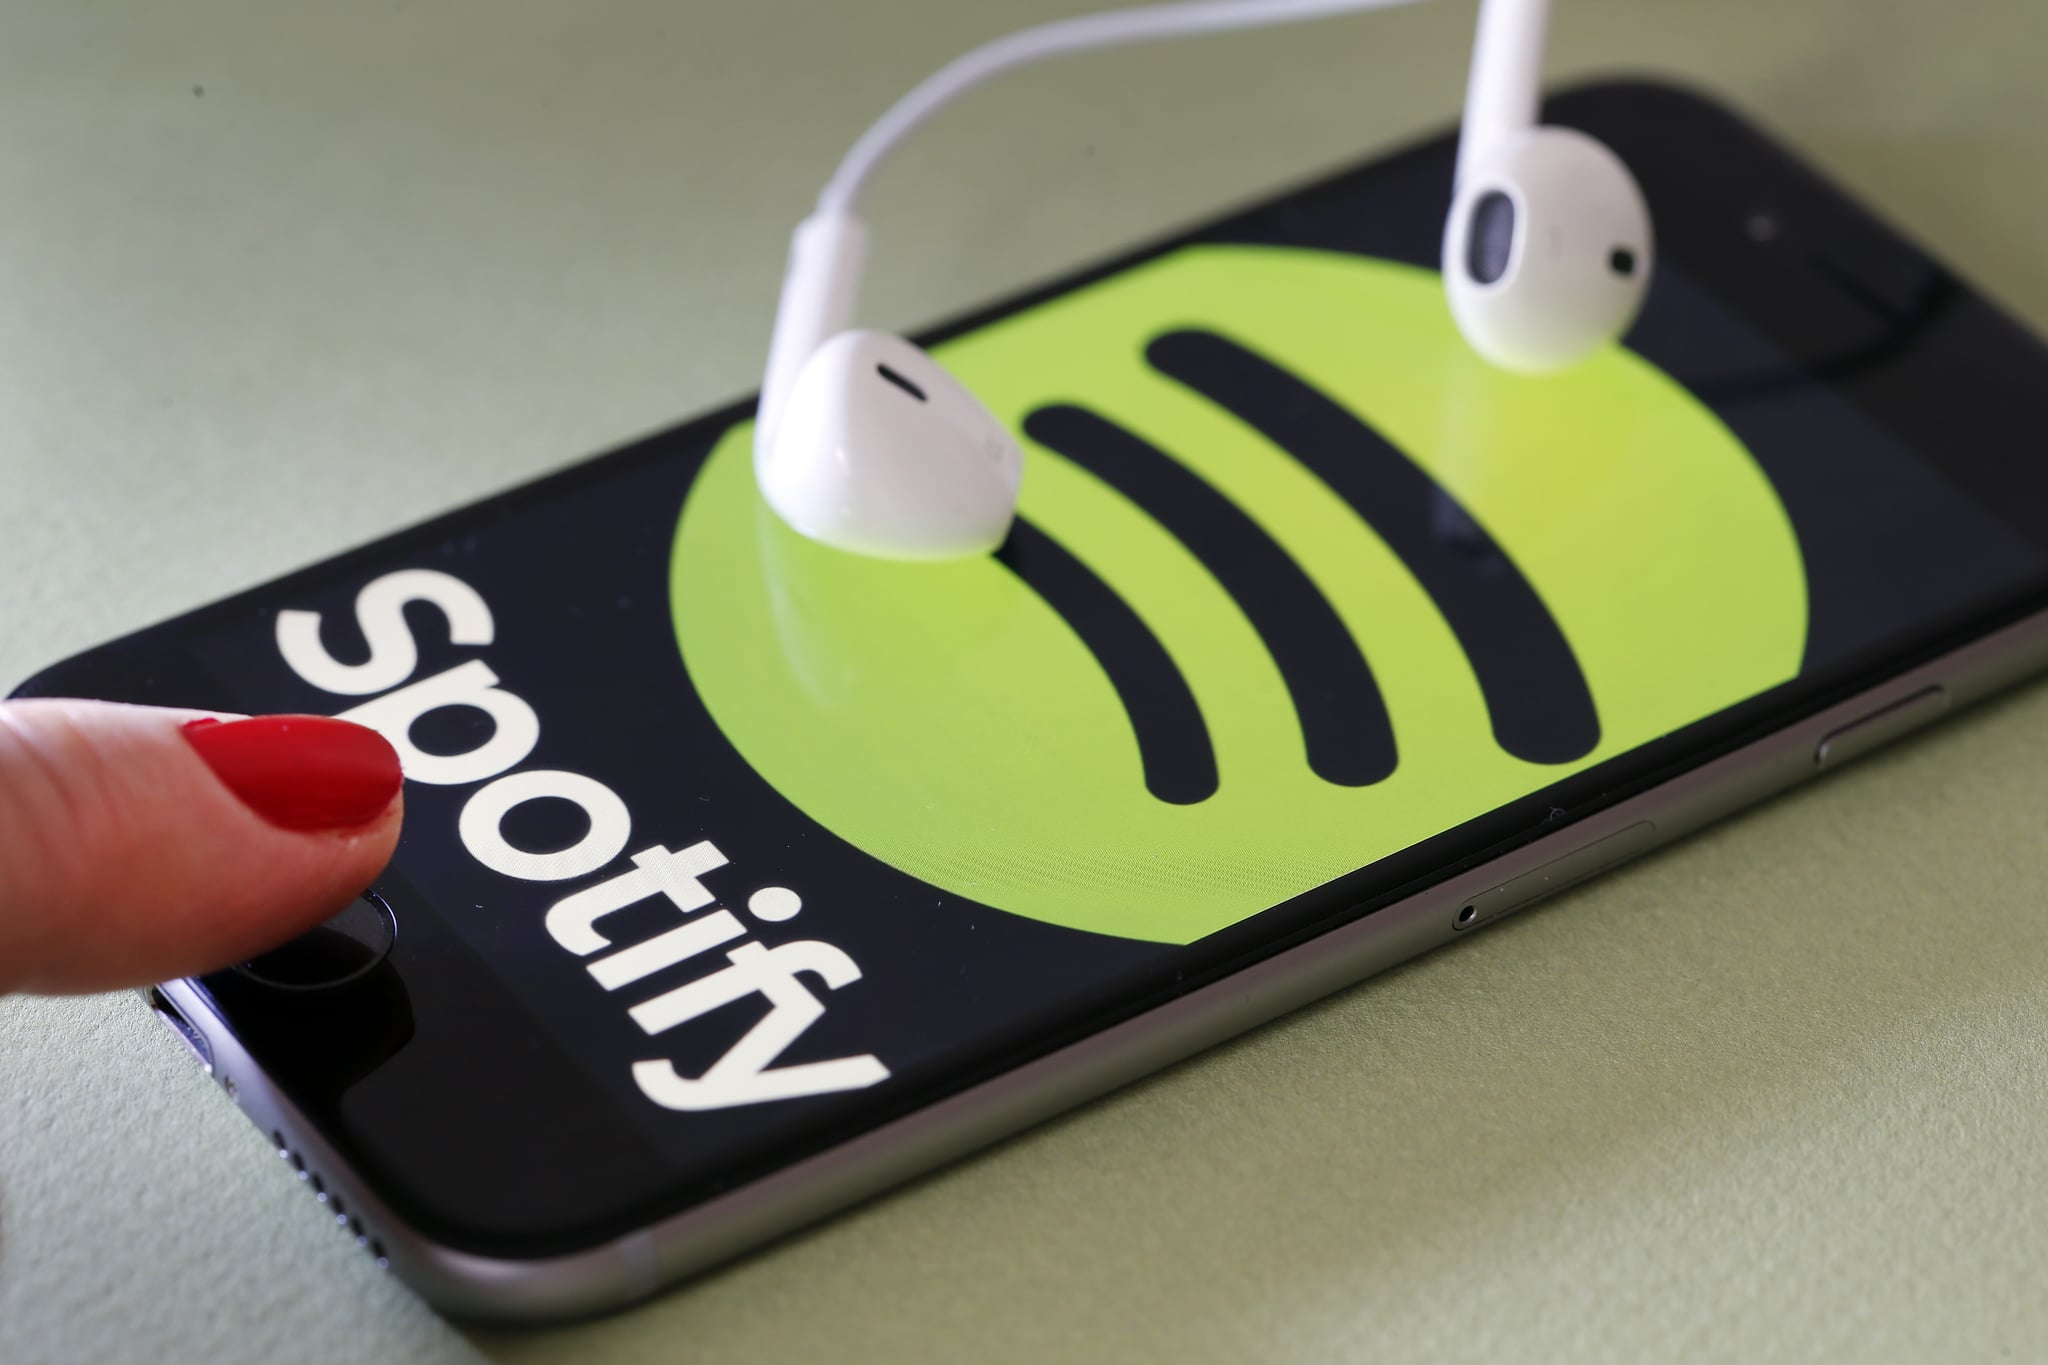 PARIS, FRANCE - JANUARY 06:  In this photo illustration, the logo of the Swedish music streaming service Spotify is displayed on the screen of an iPhone on January 06, 2017 in Paris, France. Spotify announced, via a tweet published Thursday, that it now has 70 million paid subscribers. As a comparison, in September, Apple Music claimed 30 million subscribers and Deezer had fewer than 10 million subscribers. Spotify, the world's largest streaming music company, is expected to be listed on the Wall Street stock market in the first quarter of 2018.  (Photo by Chesnot/Getty Images)